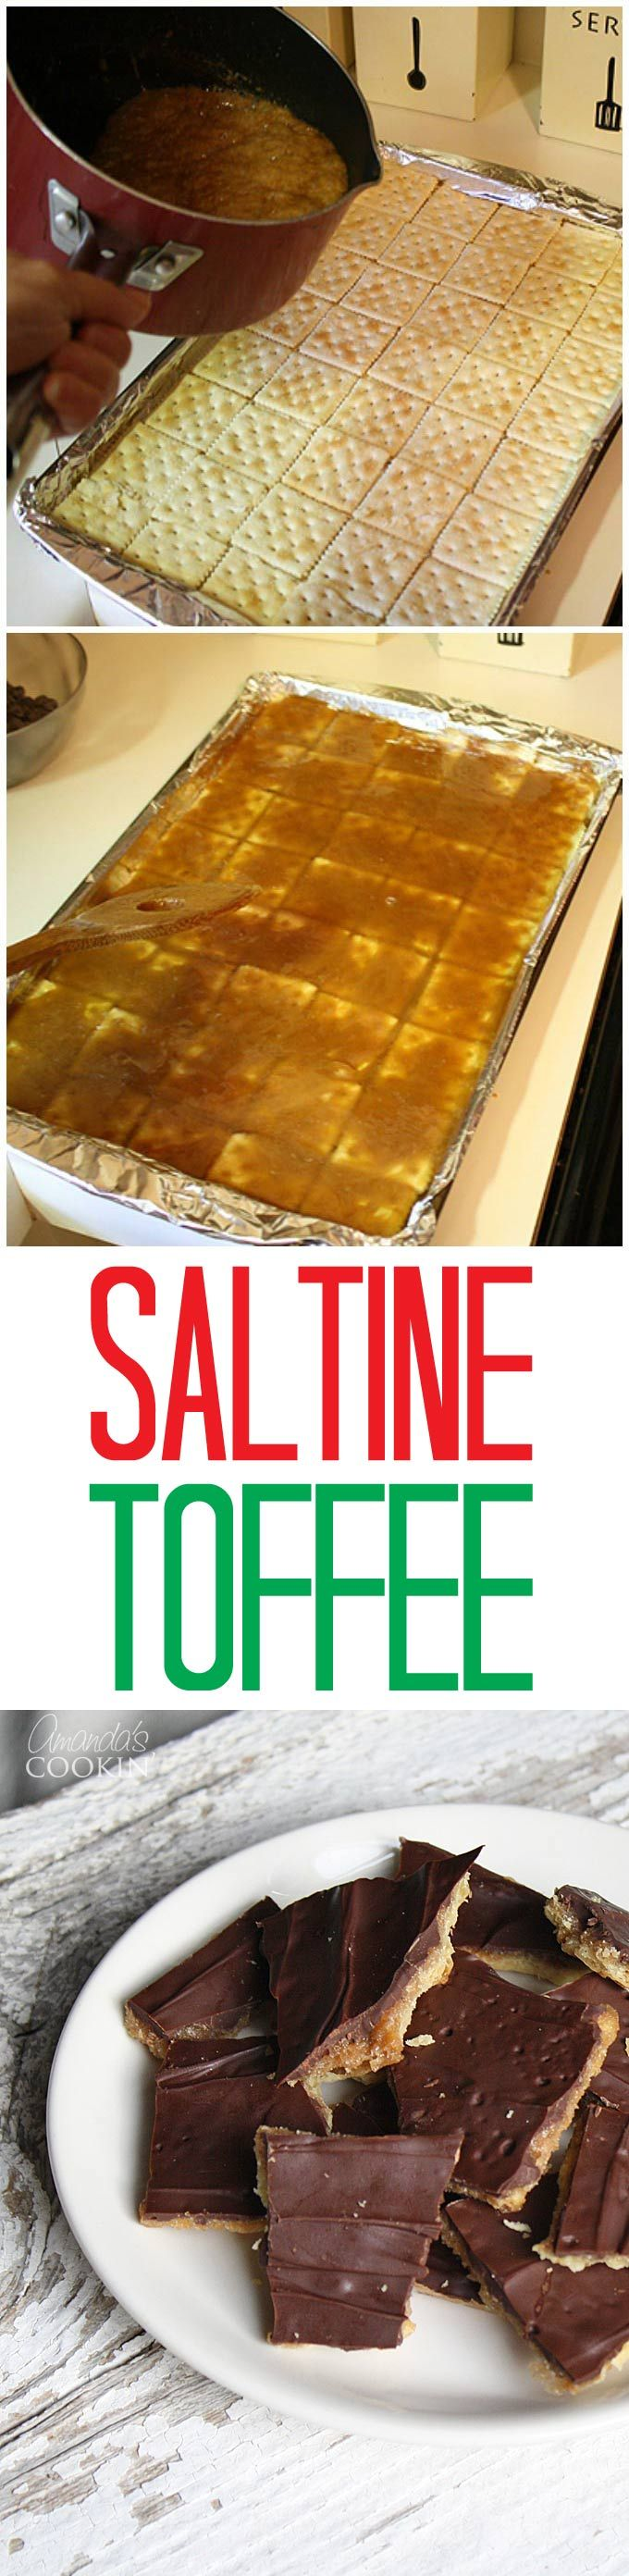 If you have never tried saltine toffee before, I have to warn you that this stuff is very addictive! I don't think it's possible to stop at just one piece.